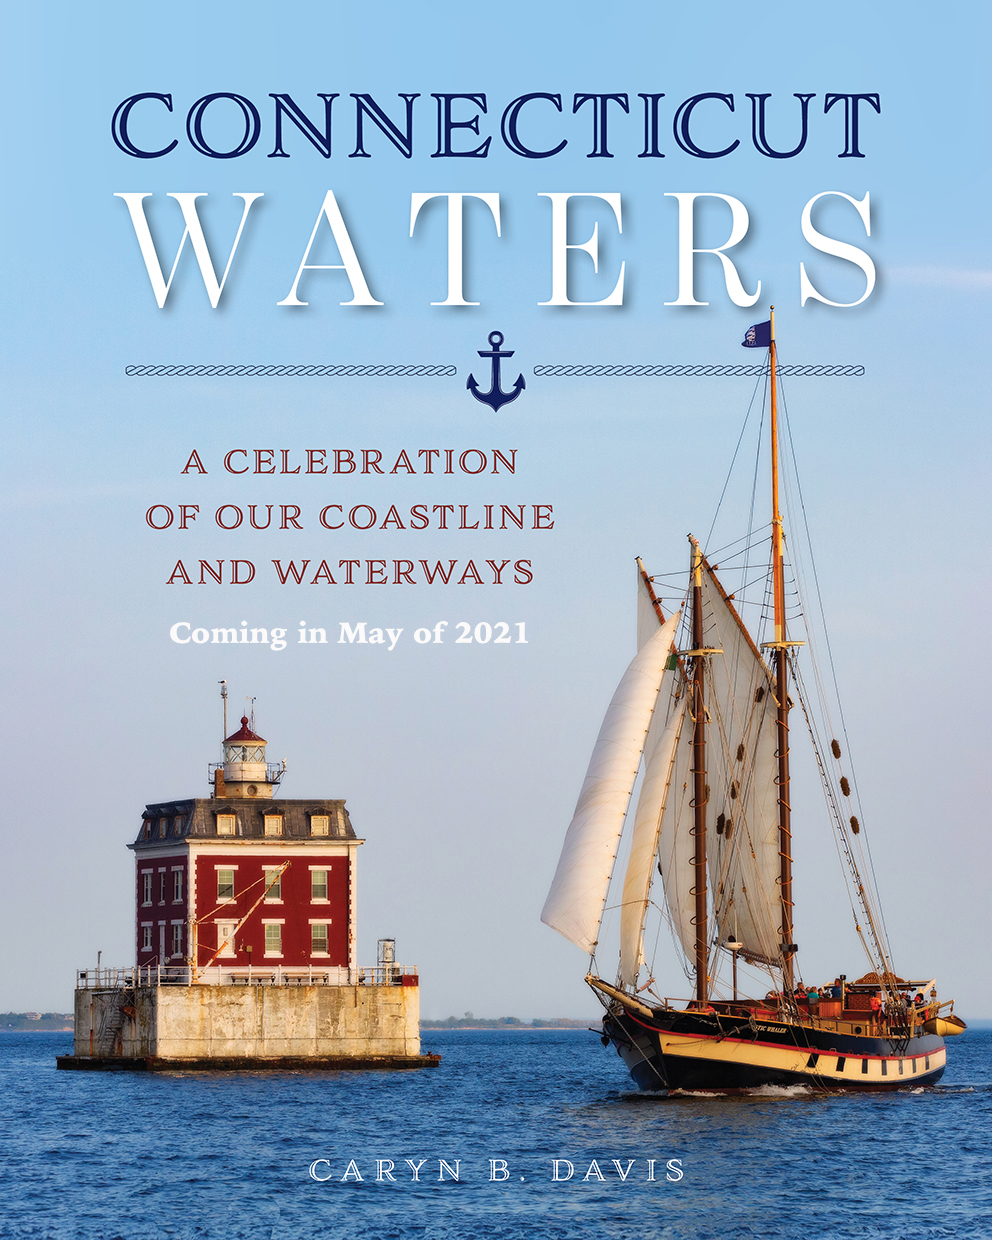 Connecticut-Water-A-Celebration-of-Our-Coastline-and-Waterways-Caryn-B-Davis